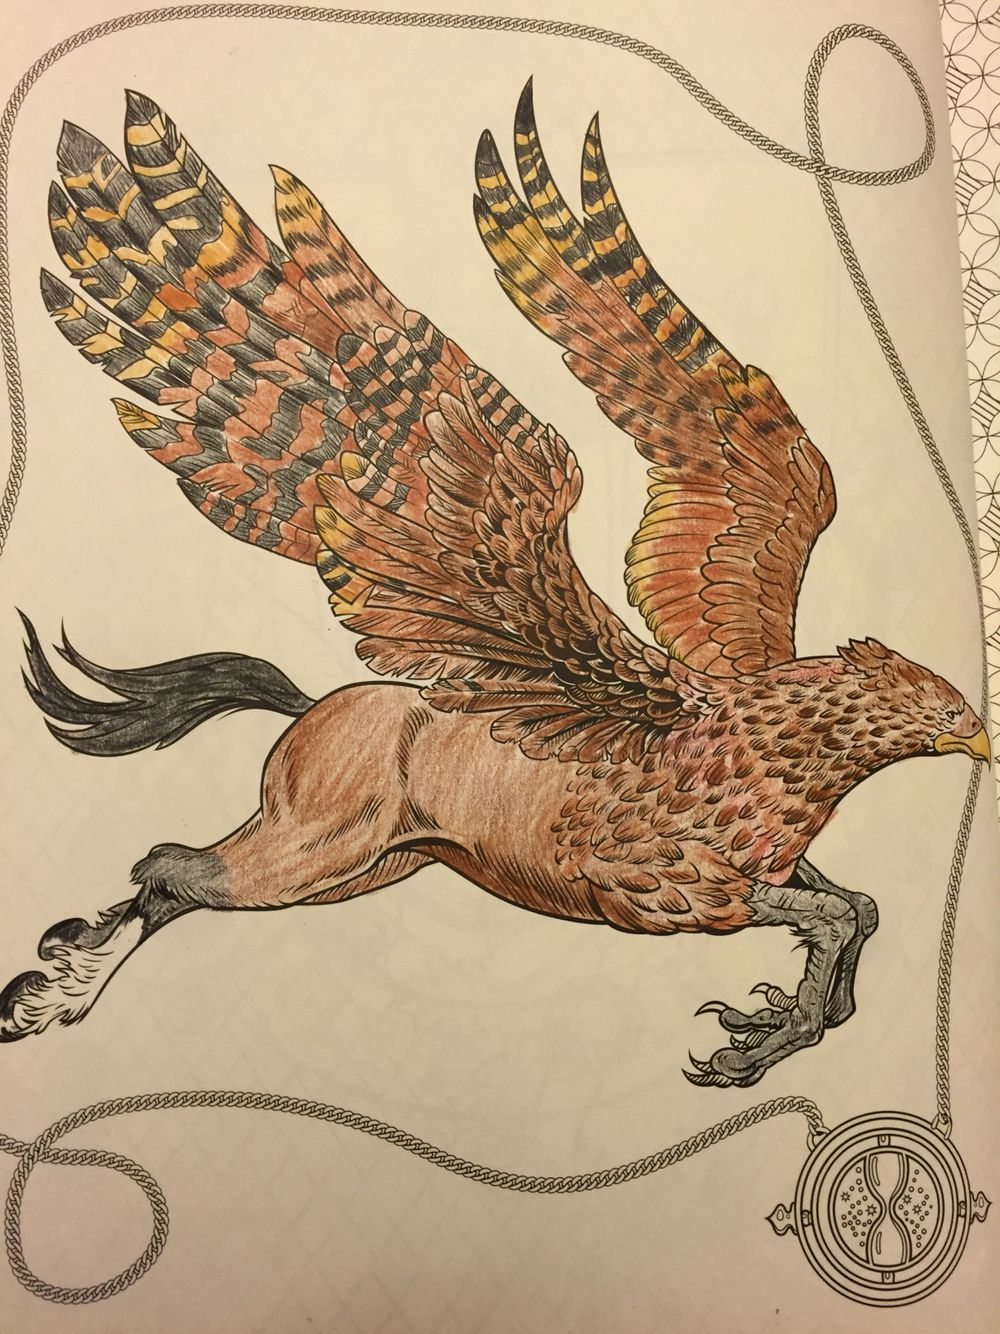 I Colored Buckbeak From The Harry Potter Coloring Book And I Had